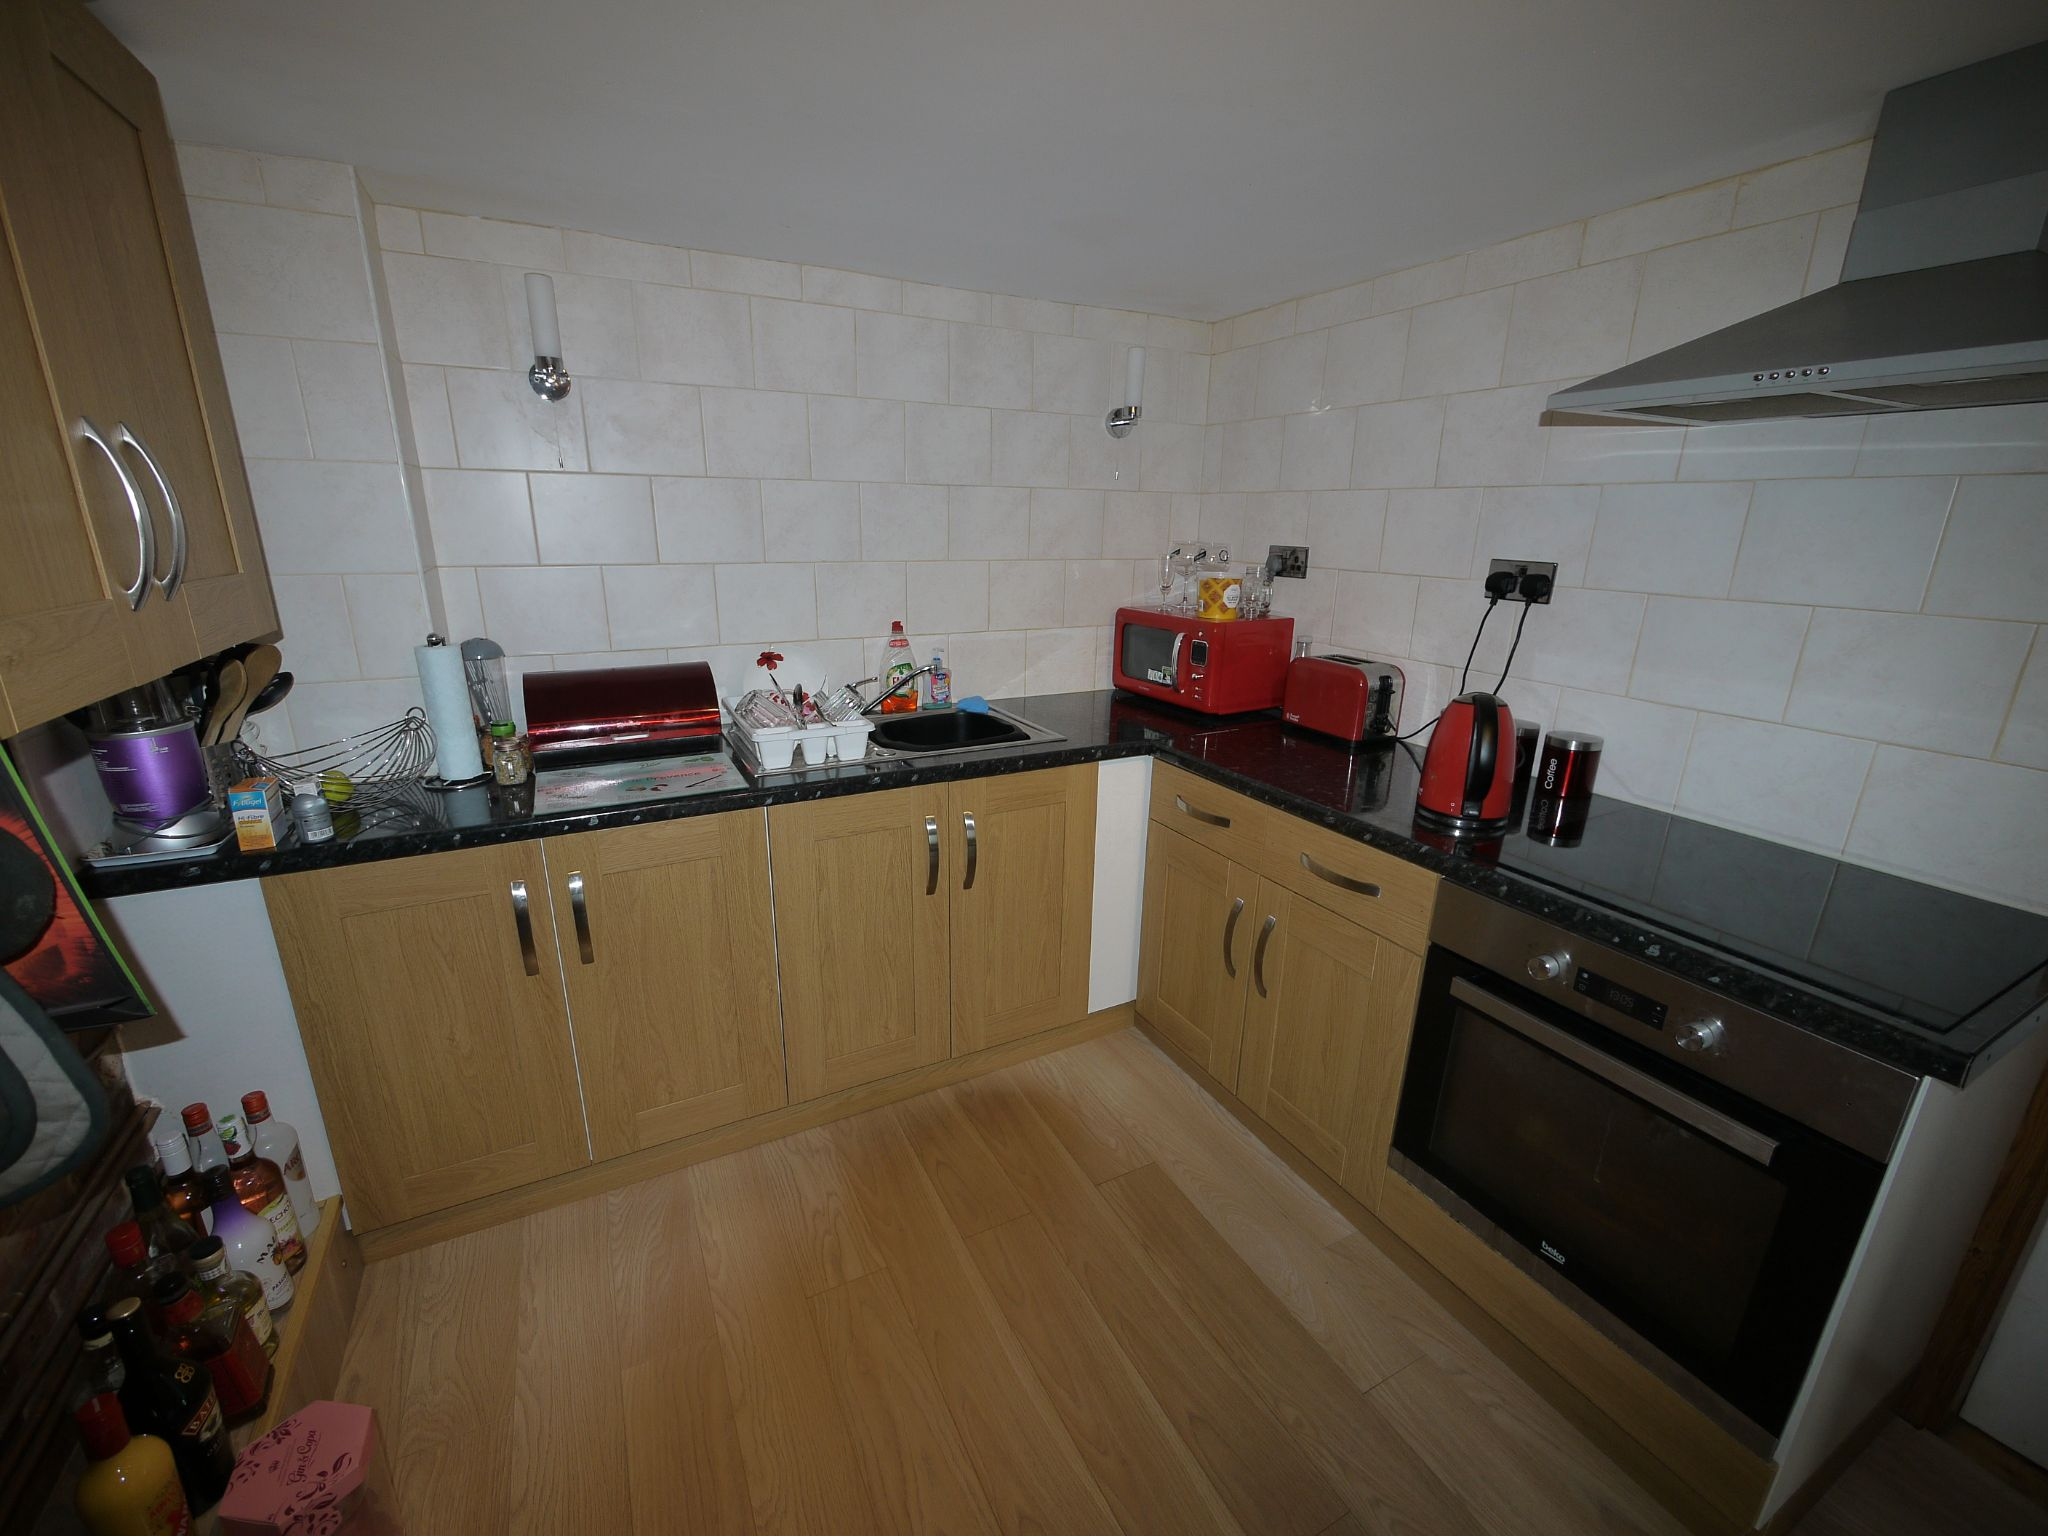 4 bedroom semi-detached house SSTC in Brighouse - Lower Gd Flr kit.